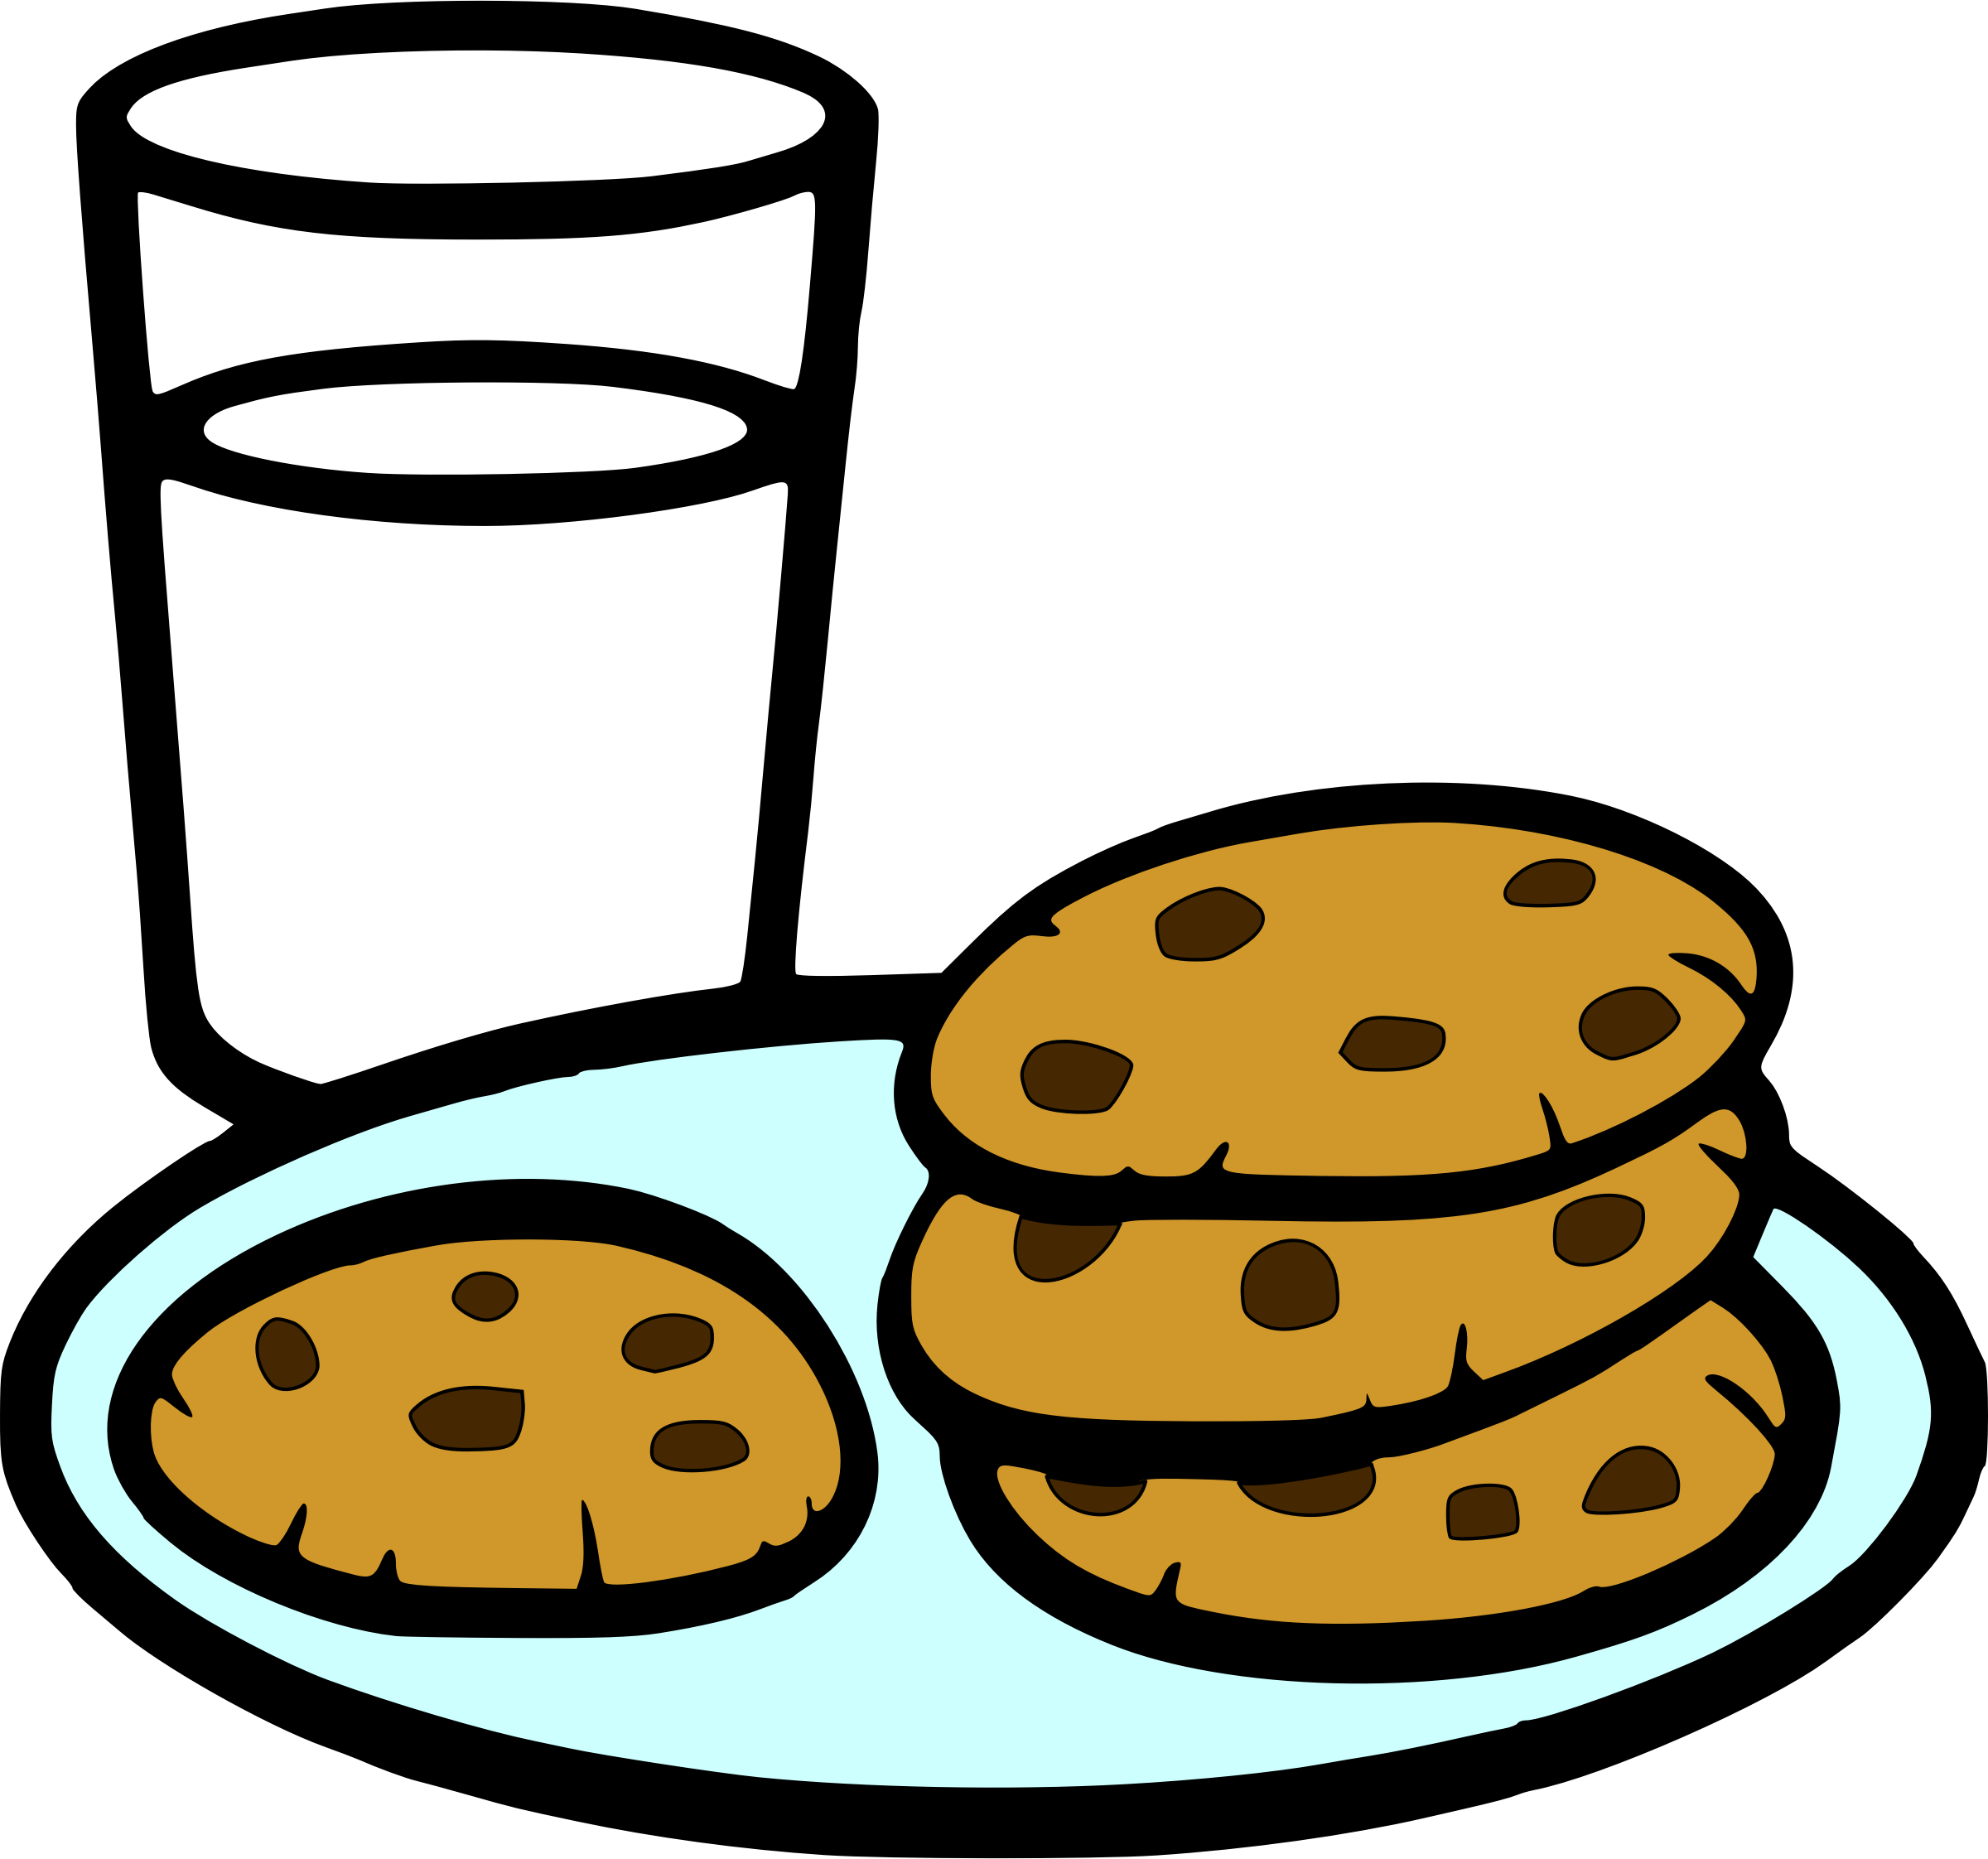 clip transparent library And milk big image. Cookies clipart